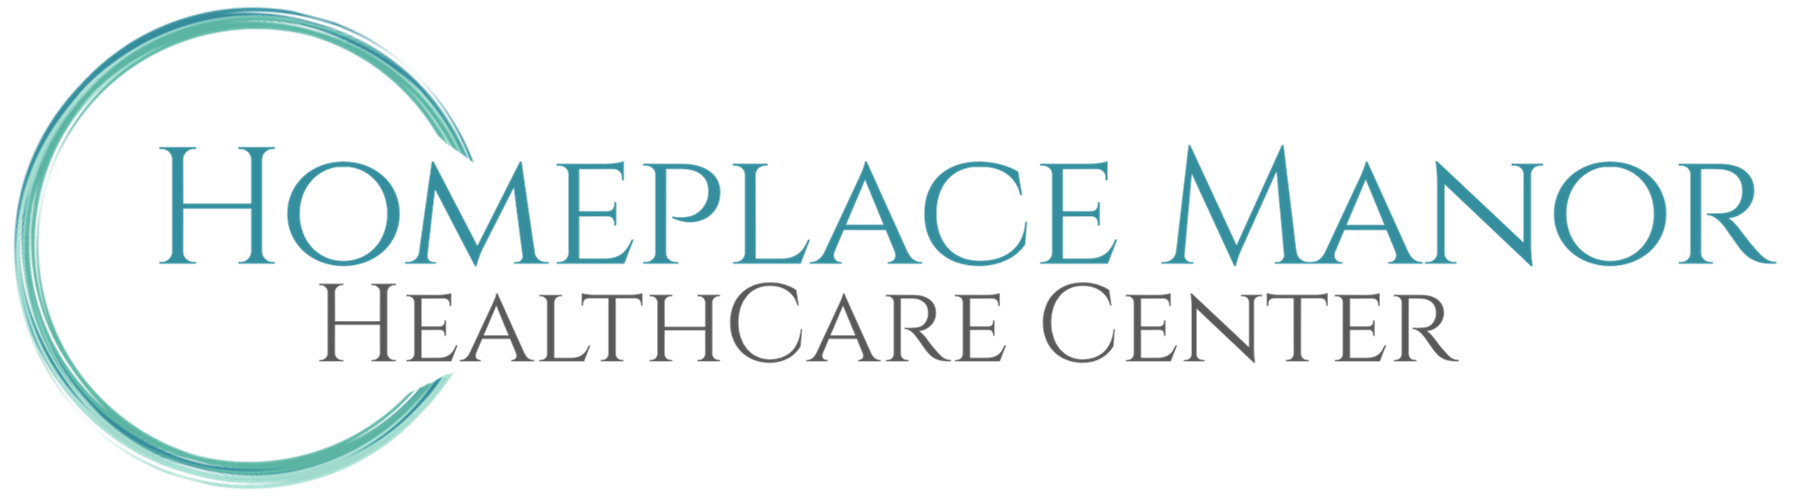 Homeplace Manor Healthcare Center